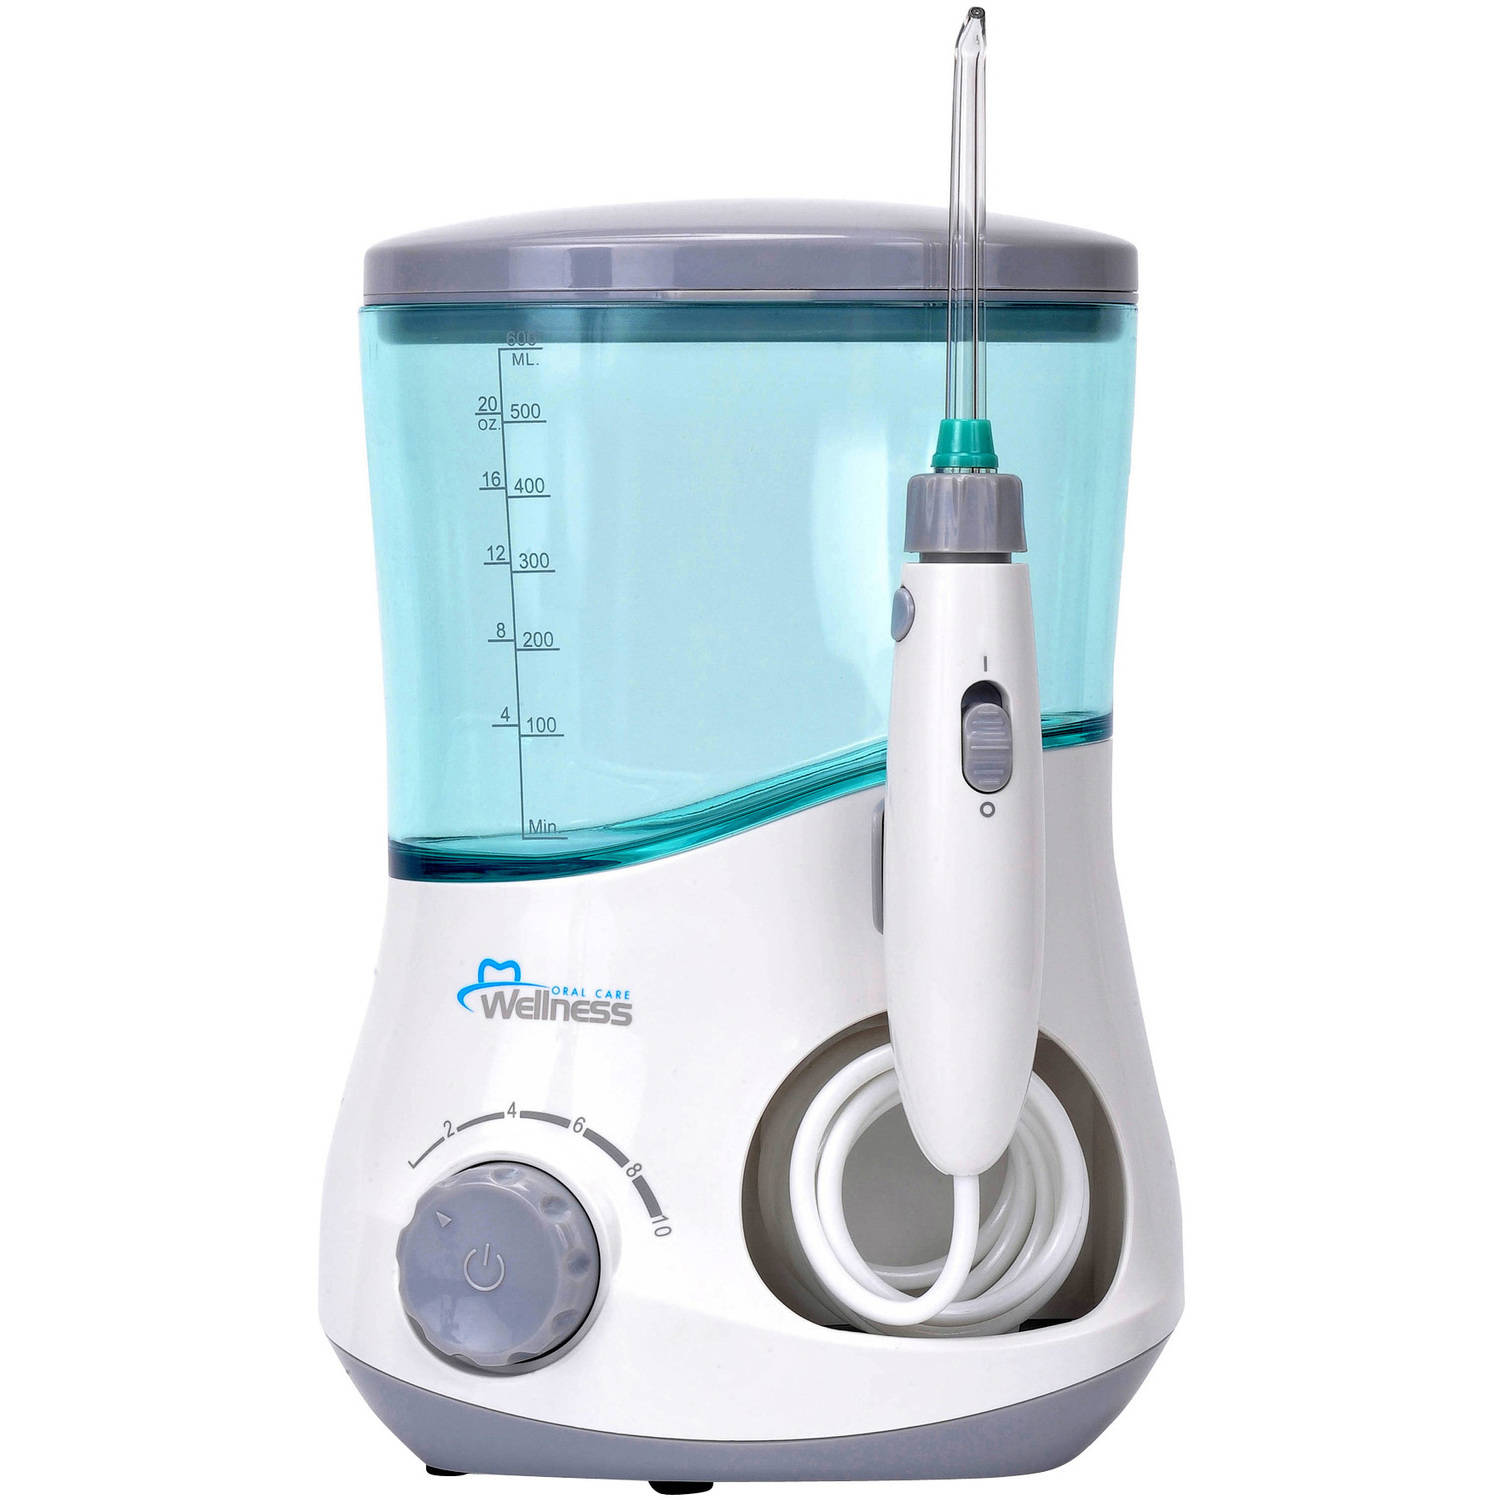 Wellness Oral Care Water Flosser Kit, WE4900, 8 pc